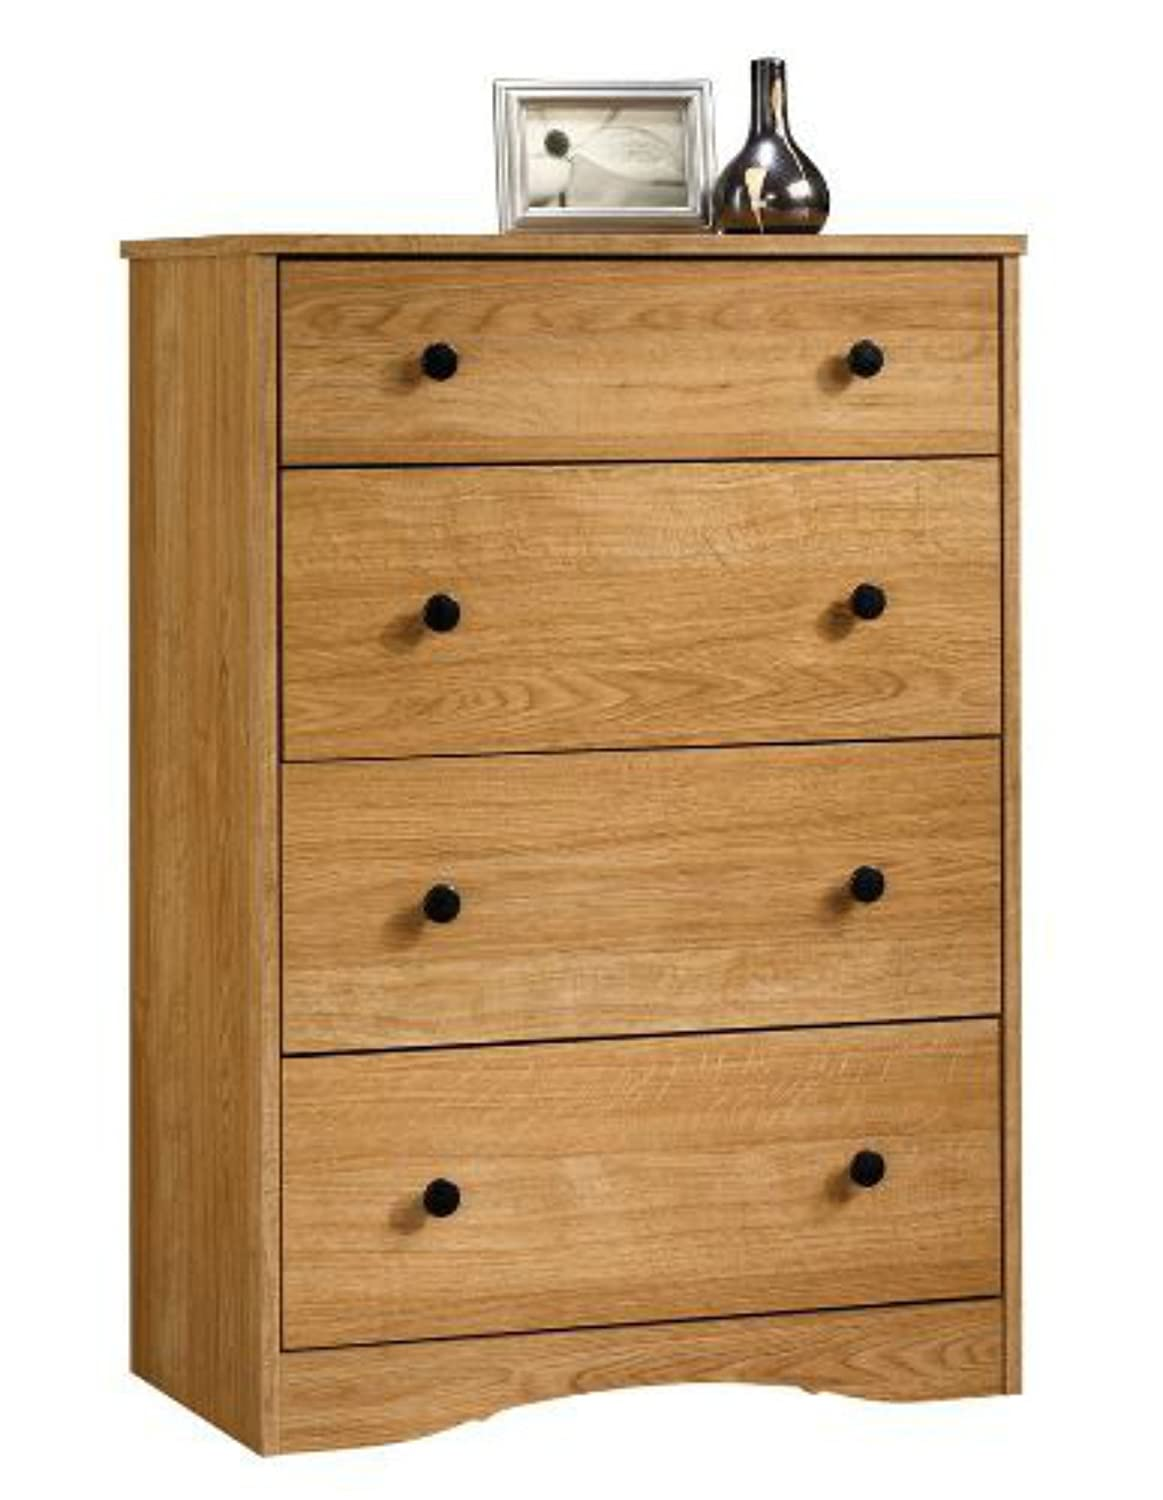 Corner Bedroom Dresser Ikea Storage Solutions Narrow Dressers For Small Spaces Homemade